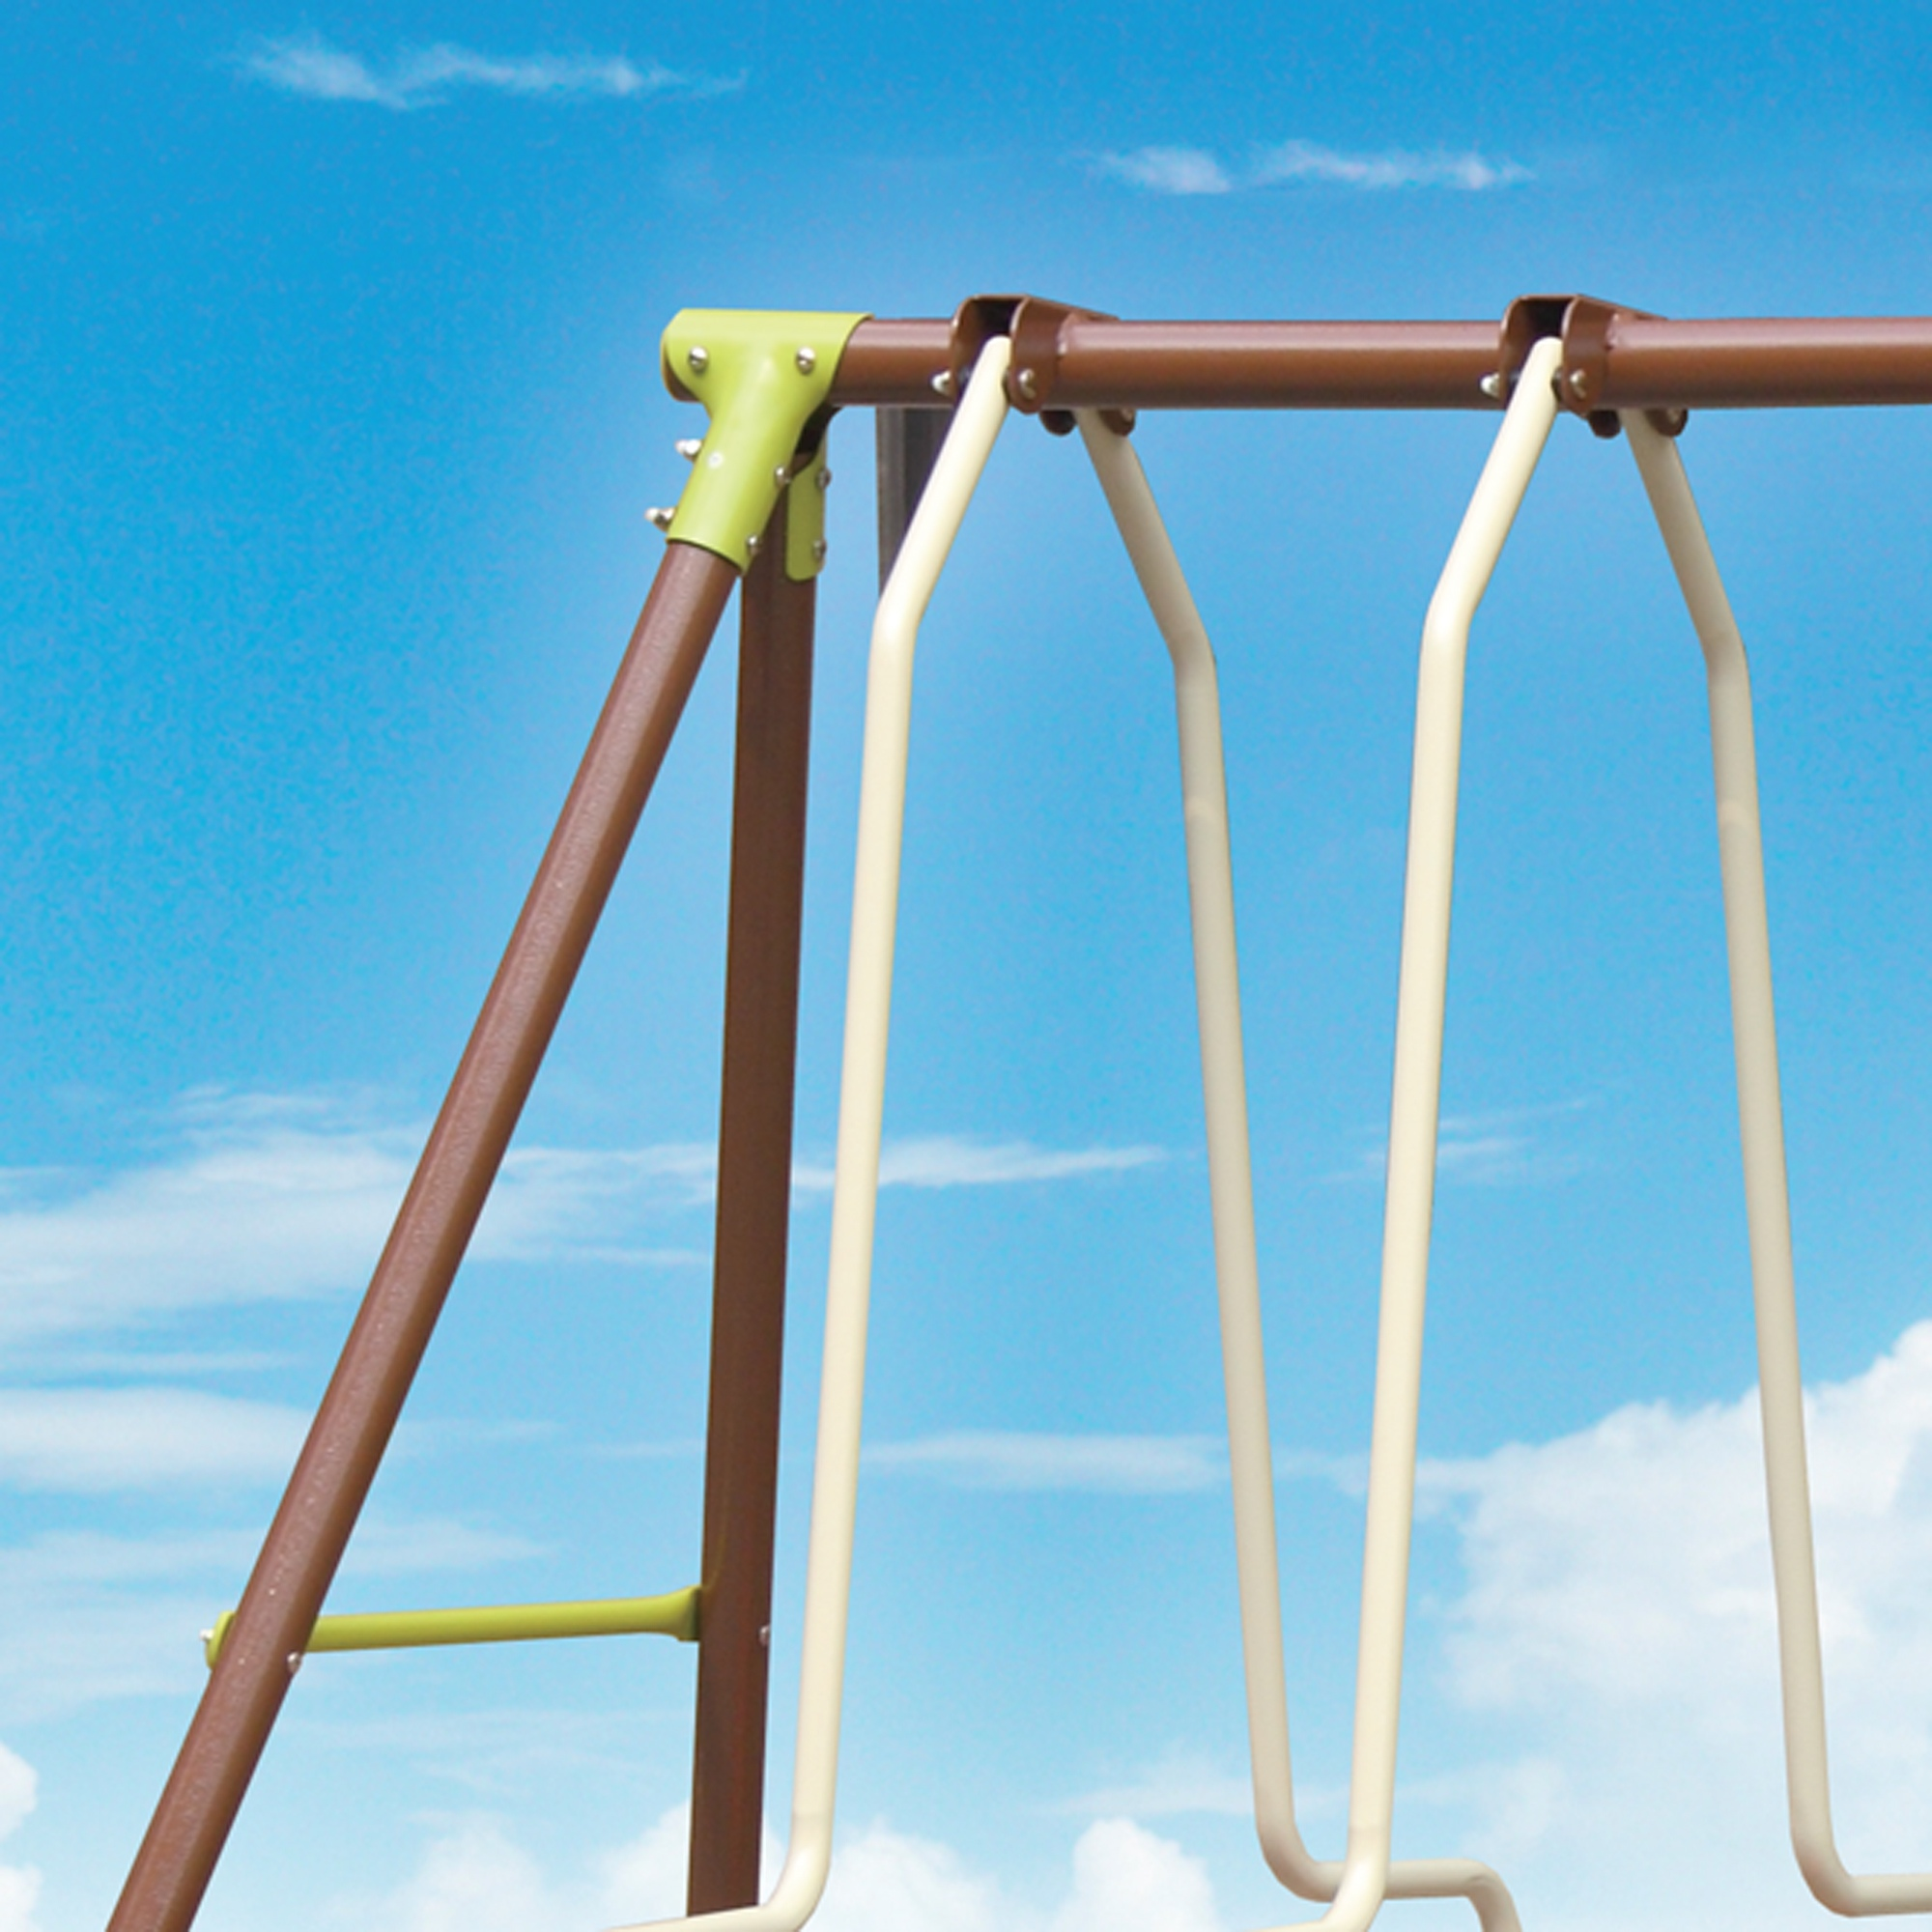 How to build outdoor wooden playground for kids